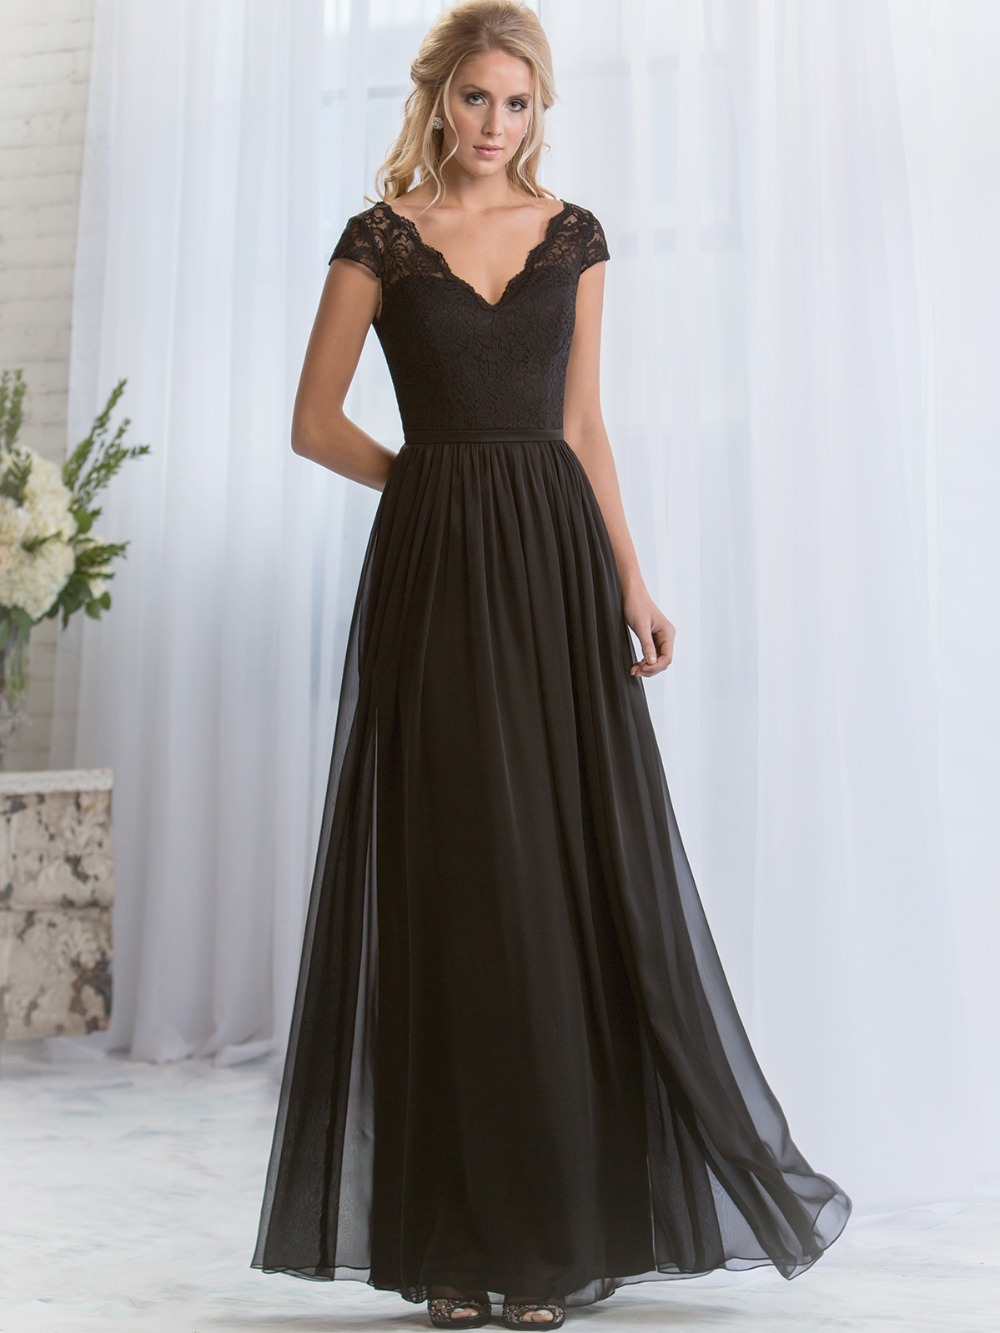 New cheap wedding dresses black bridesmaid dresses long black bridesmaid dresses long ombrellifo Choice Image